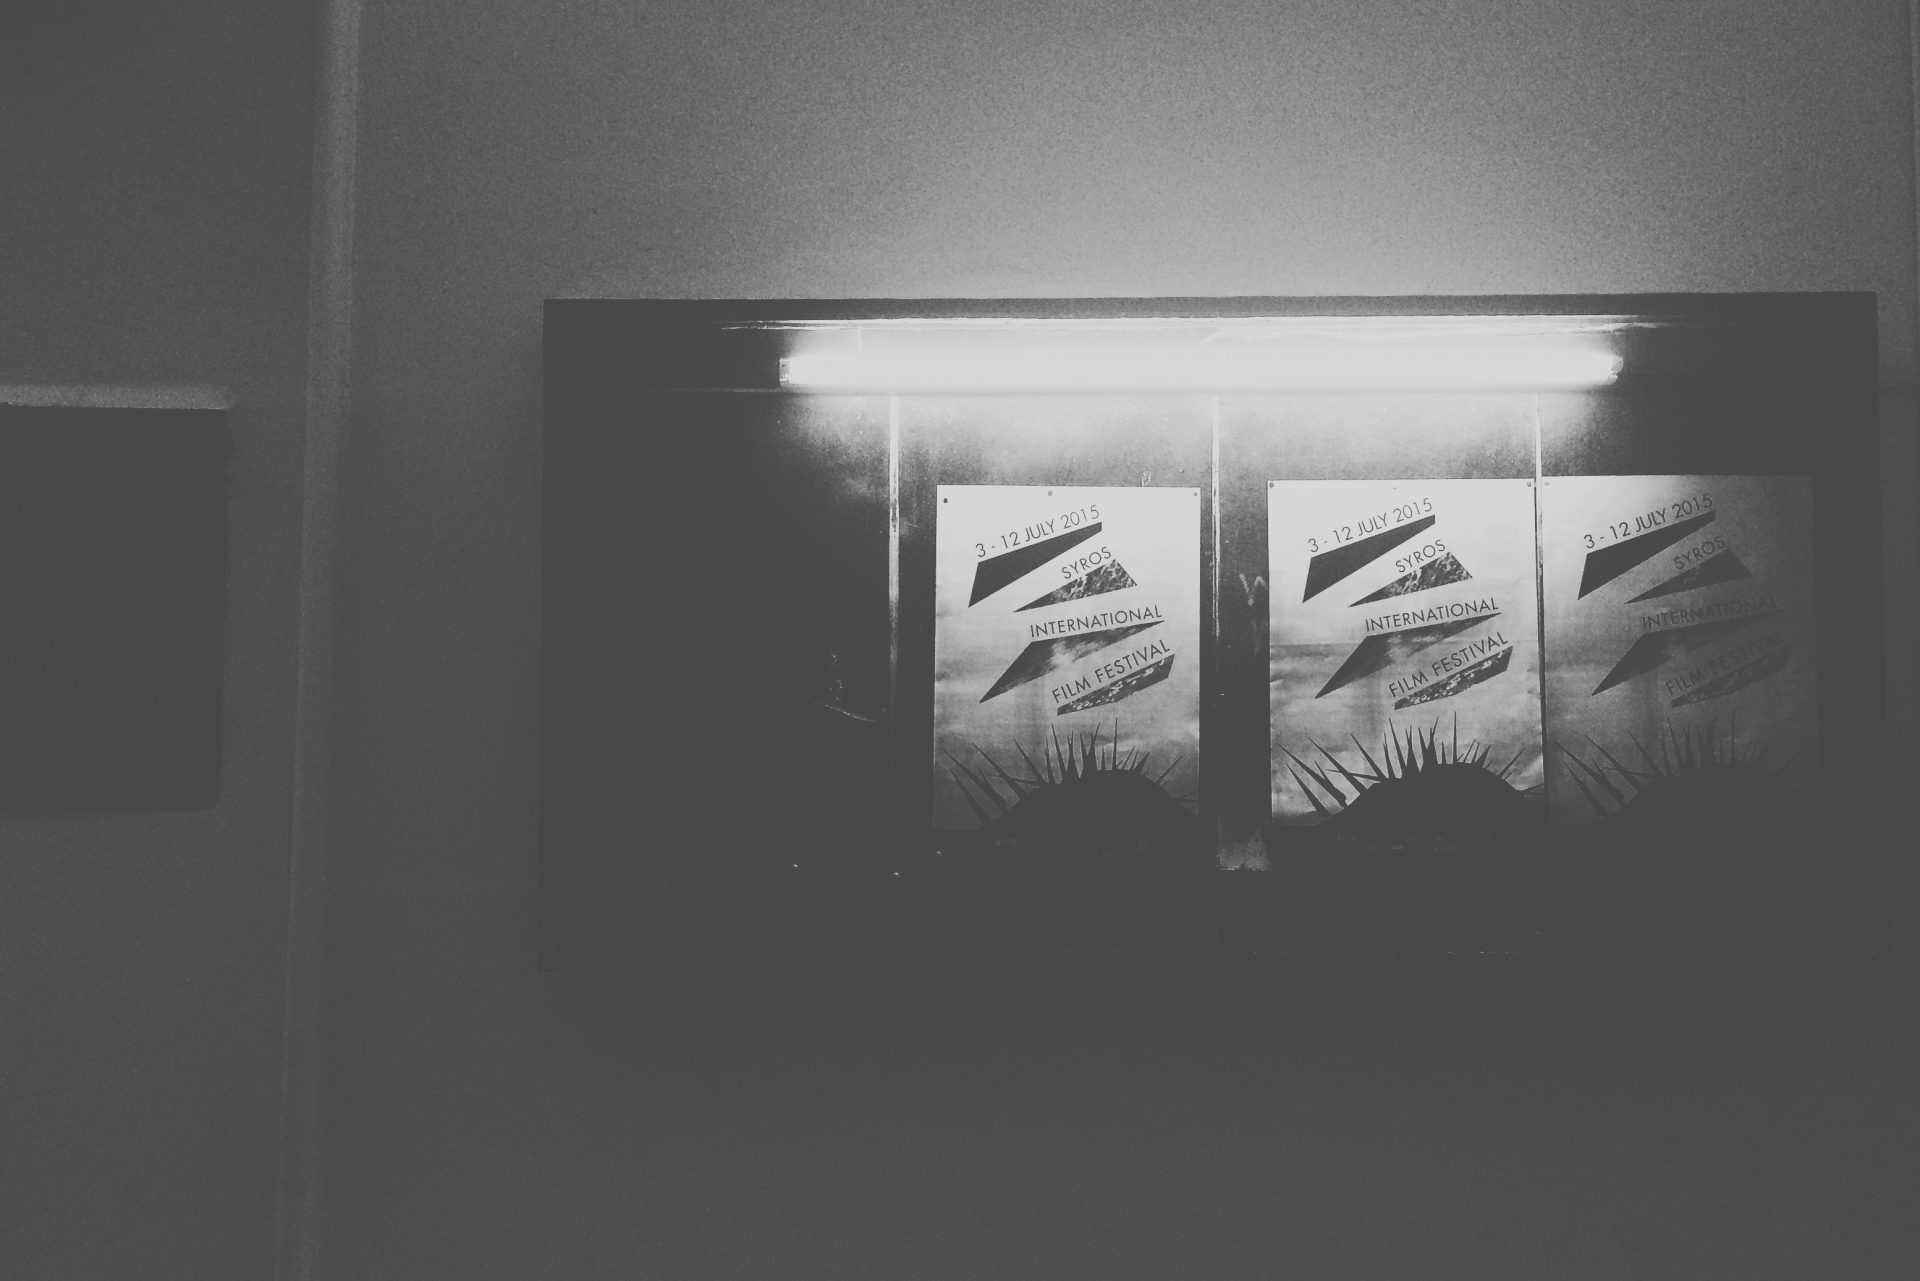 SIFF 2015 Poster [Photo by SIFF team – Processed with VSCOcam with b5 preset]